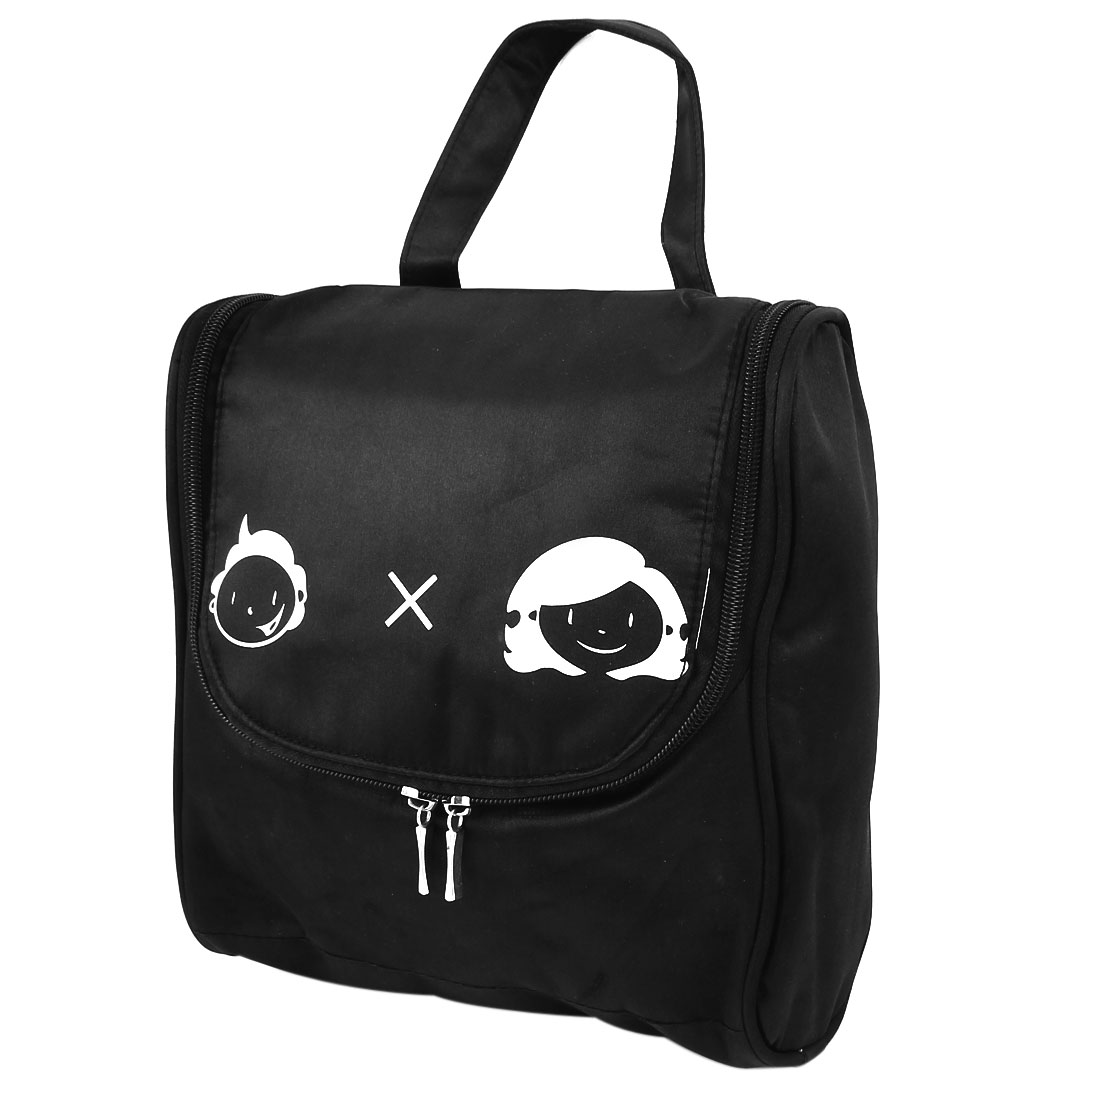 Lady Polyester Cartoon Eyes Print Travel Toiletry Cosmetic Storage Handbag Black